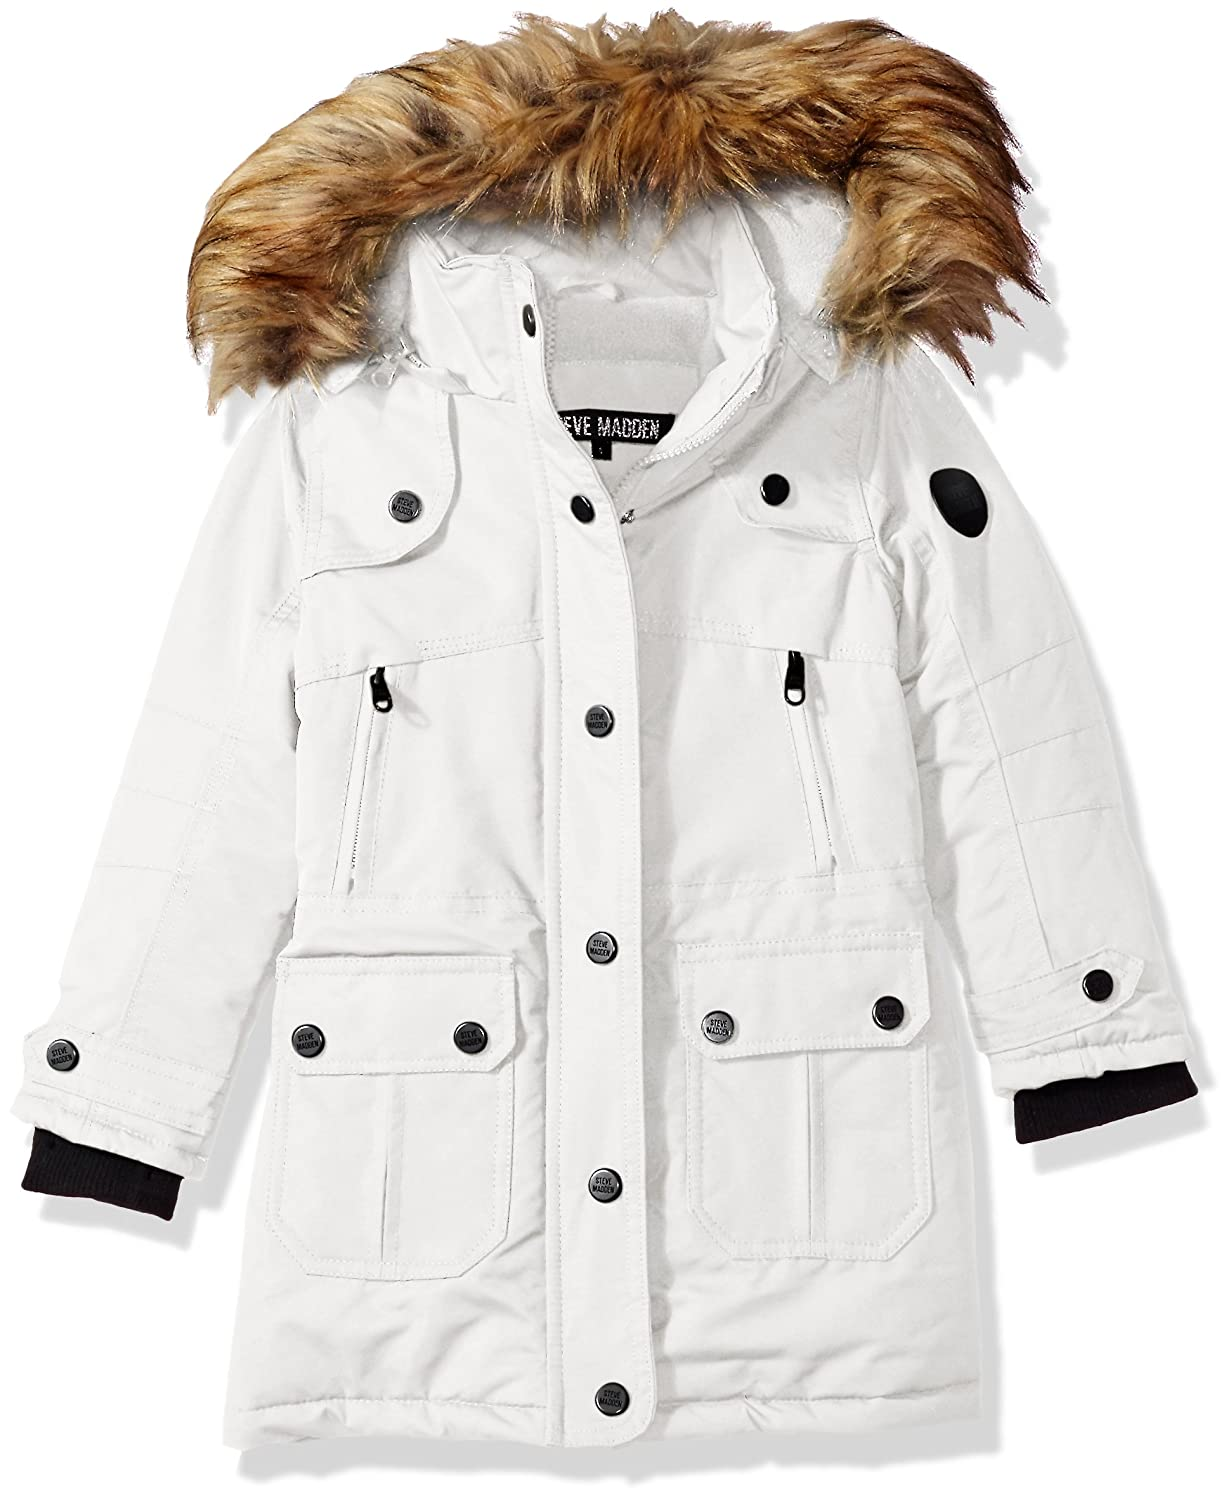 Steve Madden Girls Outerwear Jacket (More Styles Available) O_A868